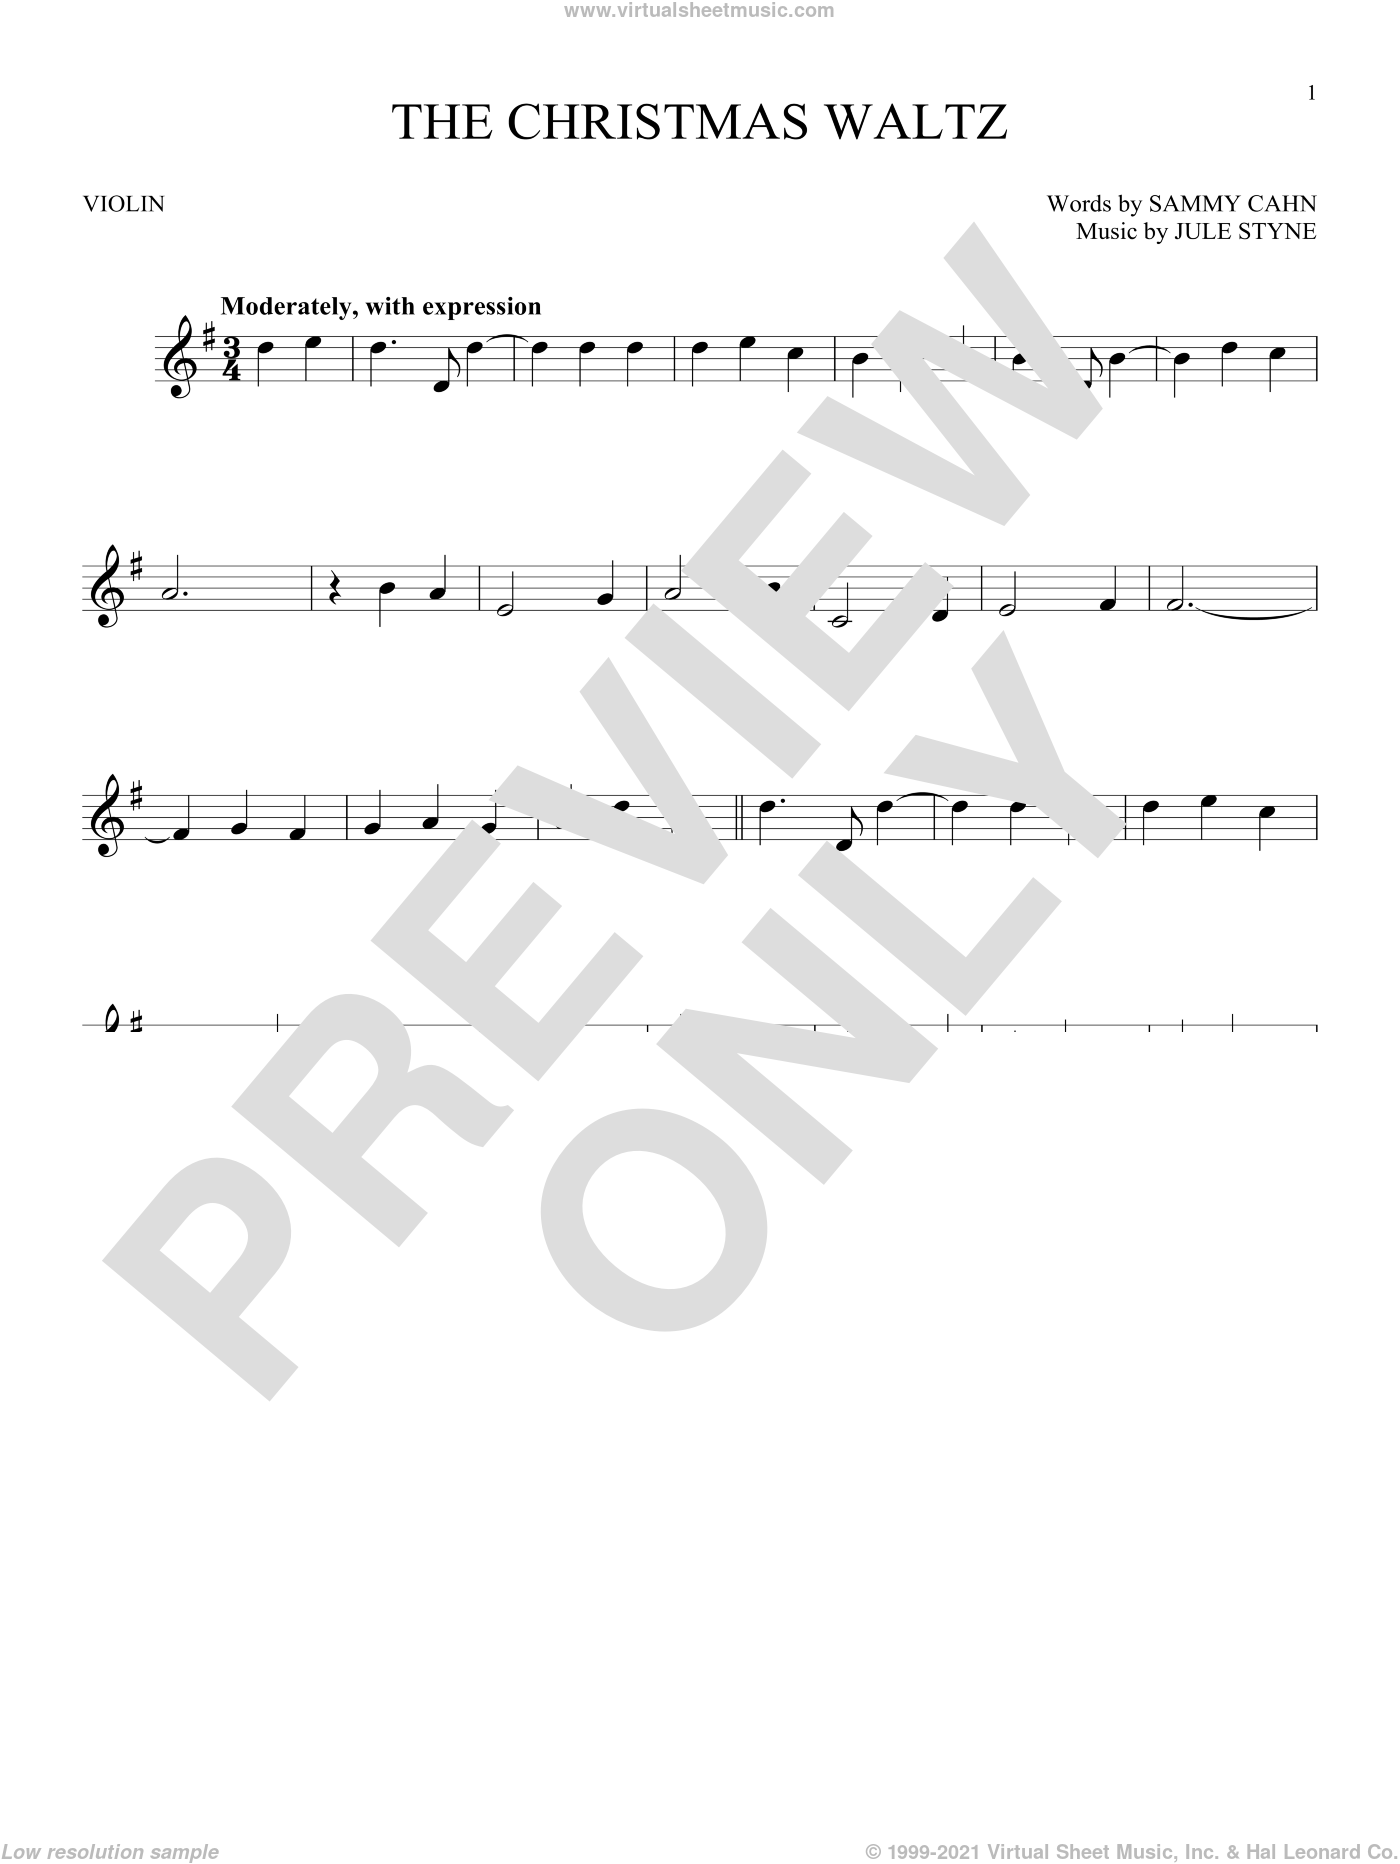 The Christmas Waltz sheet music for violin solo by Frank Sinatra, Jule Styne and Sammy Cahn, intermediate skill level